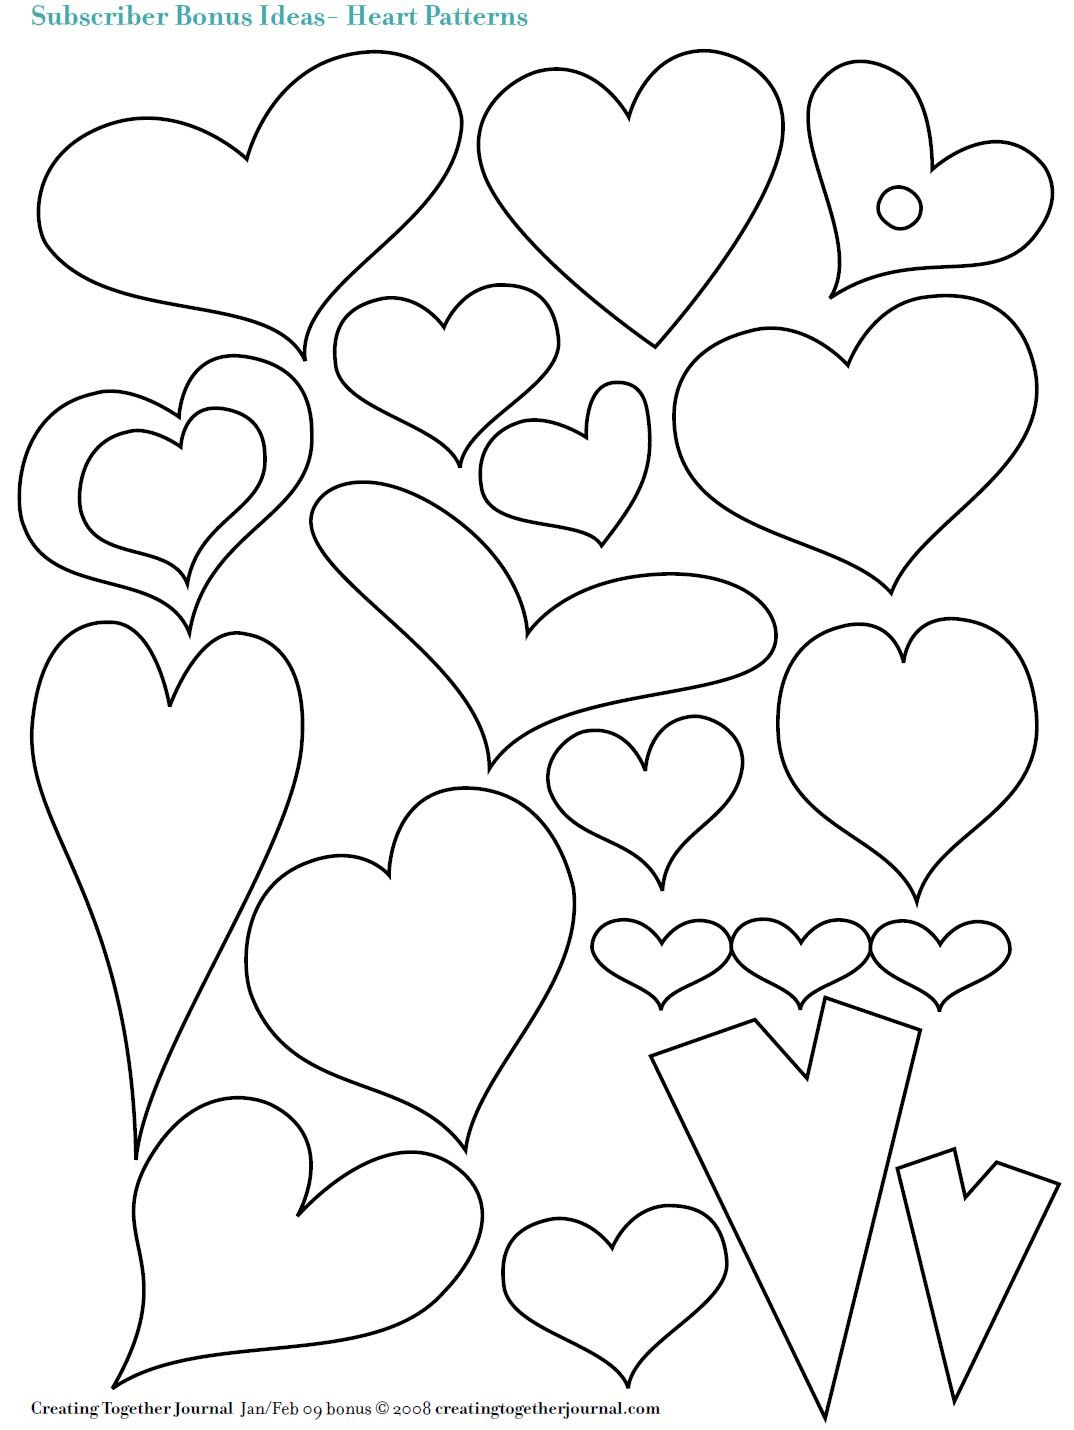 hearts hearts and more hearts applique templates would look